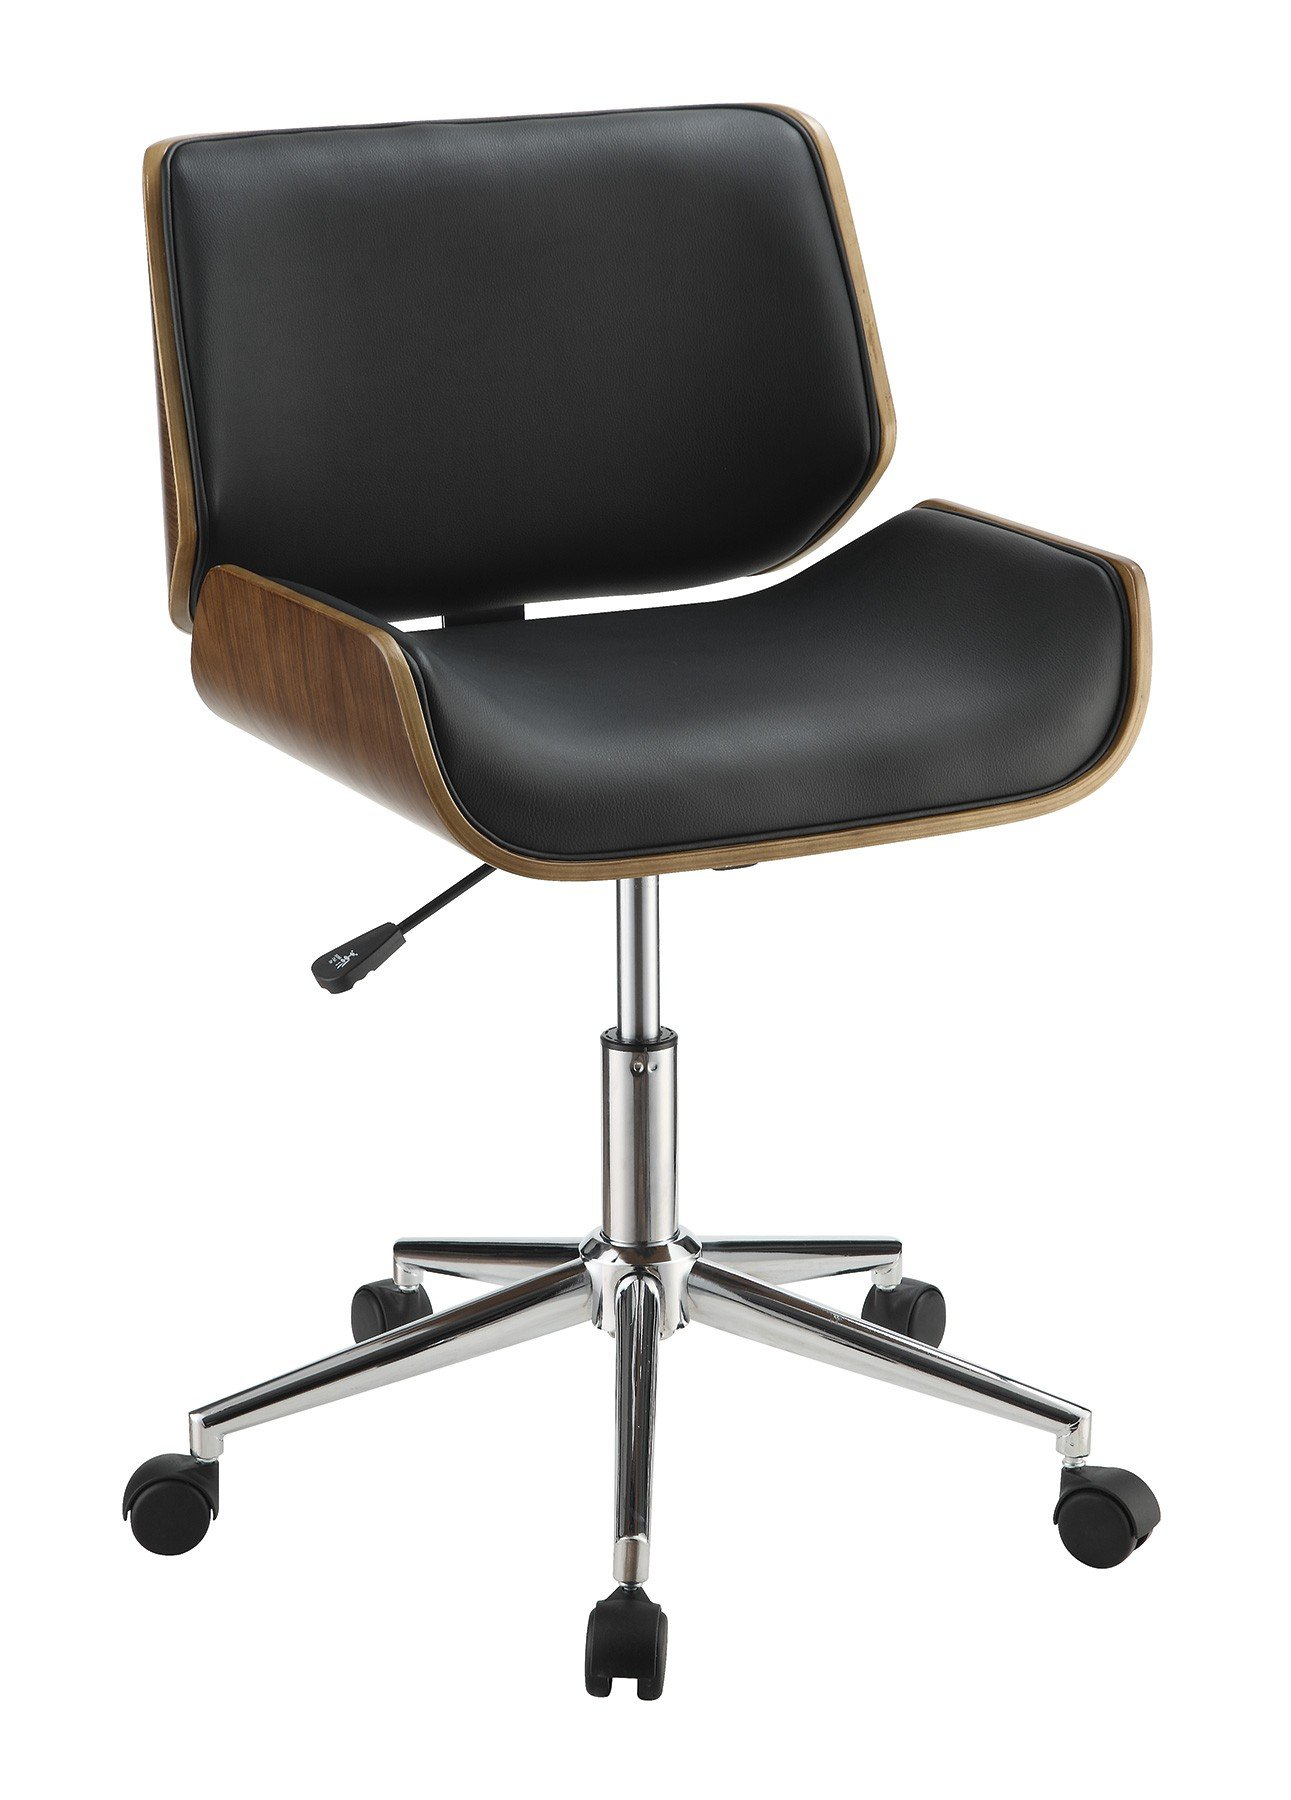 Coaster Home Furnishings Adjustable Height Office Chair Black and Chrome by Coaster Home Furnishings